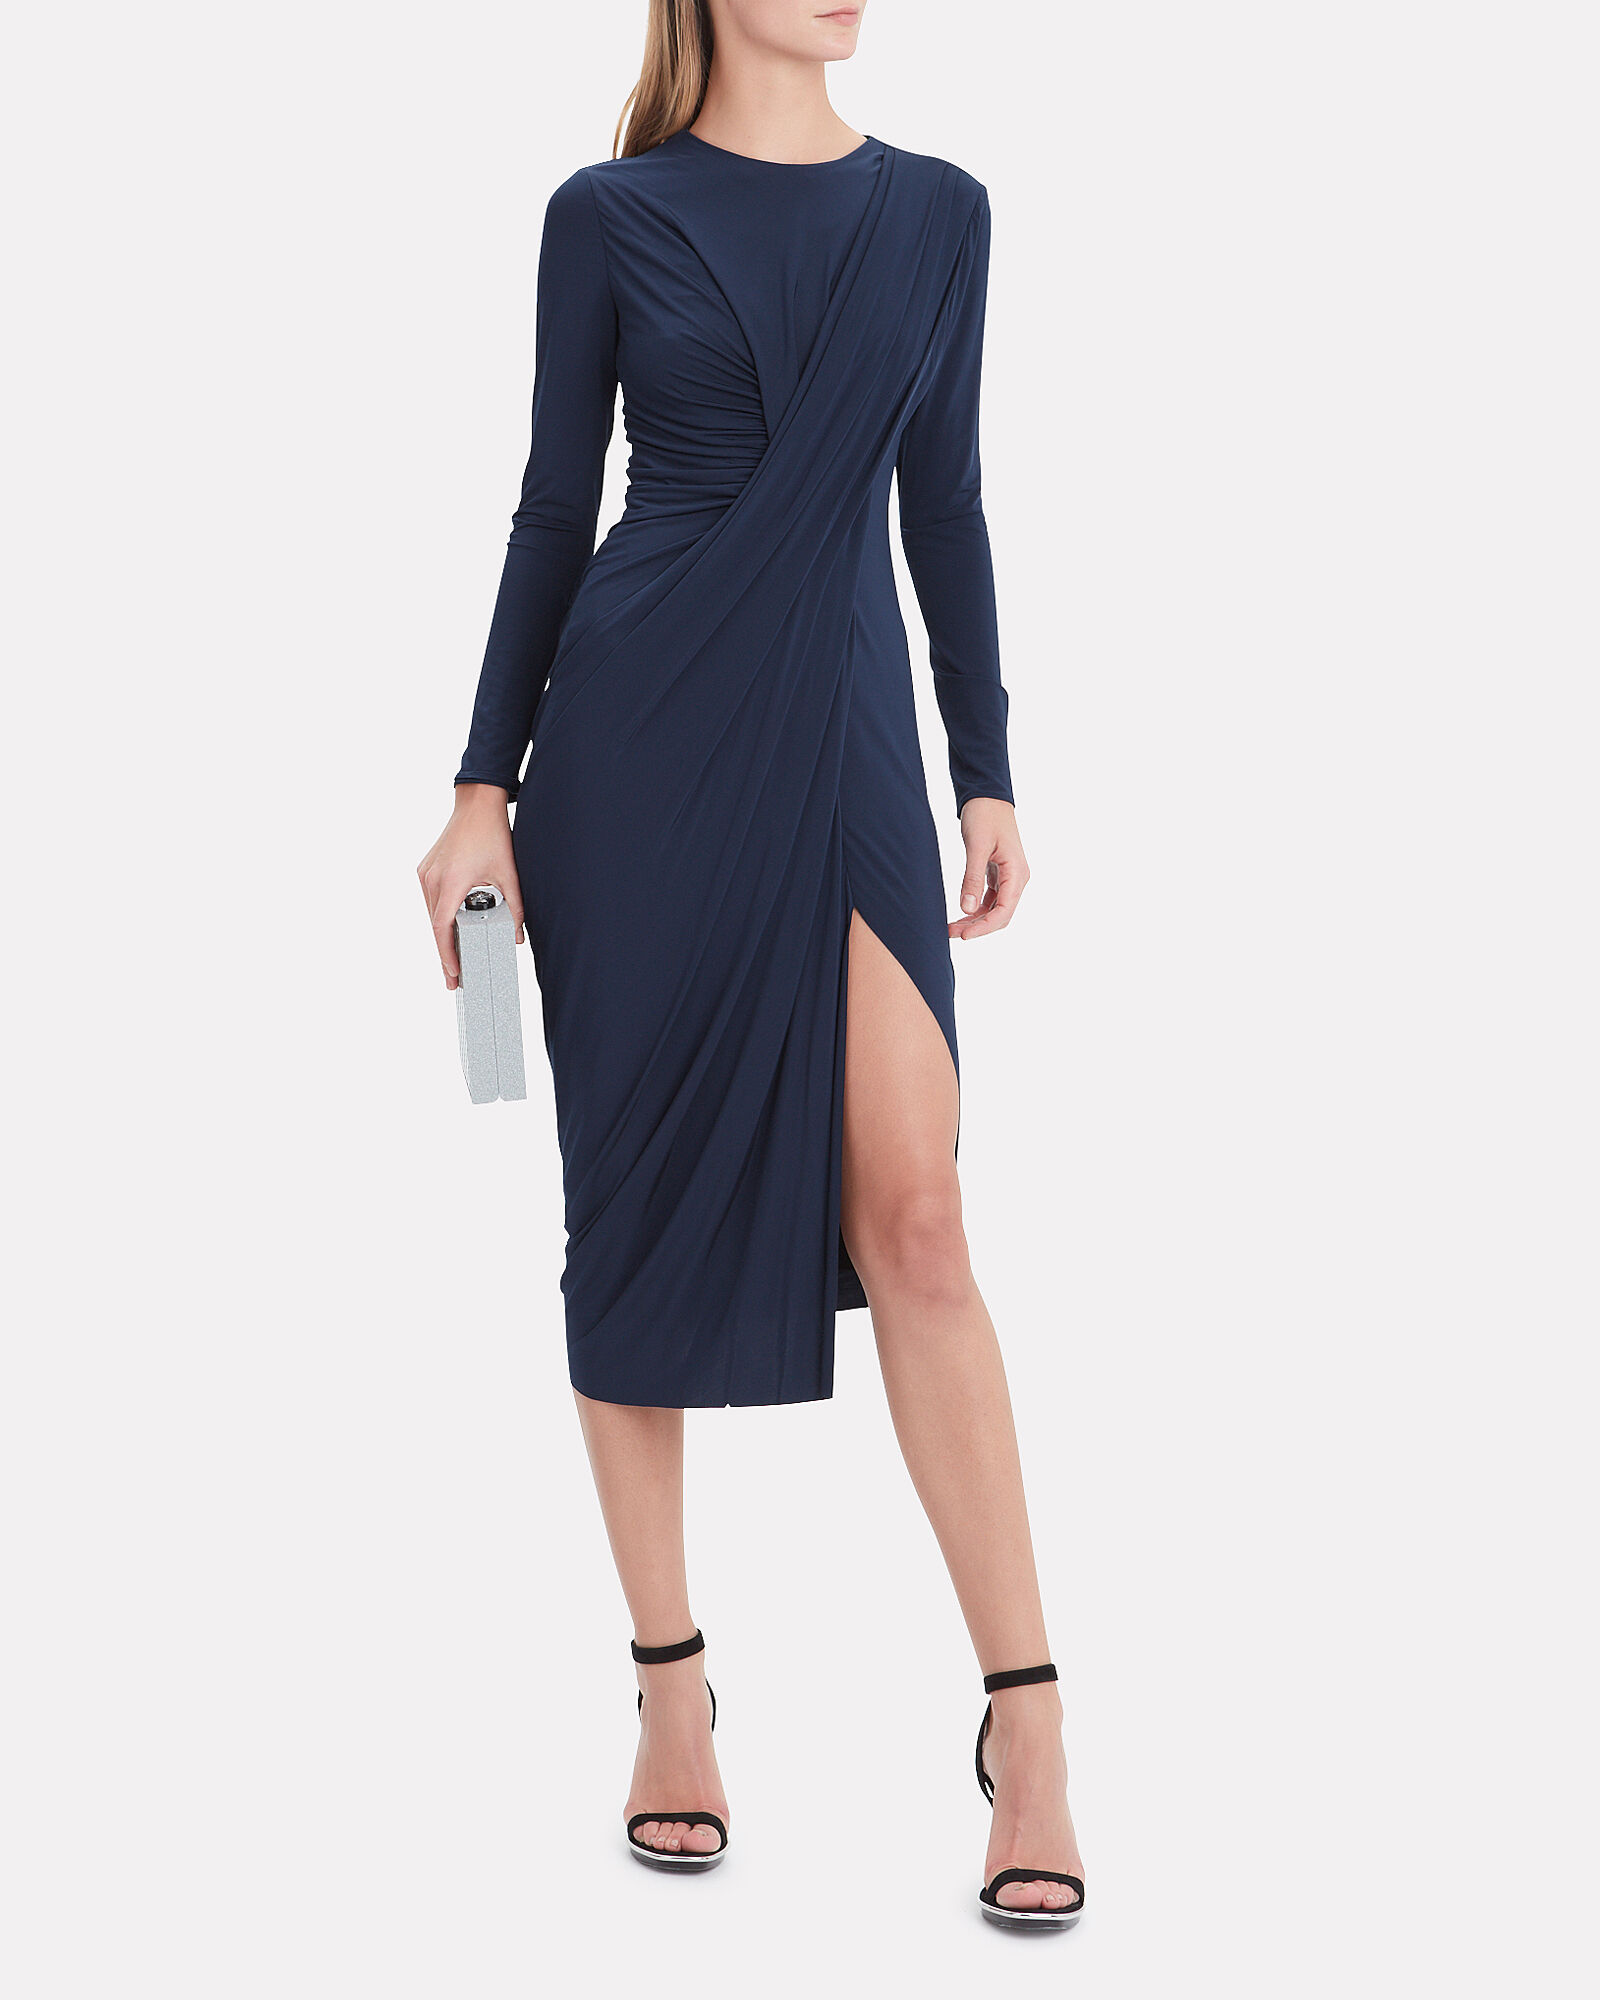 Draped Jersey Dress, NAVY, hi-res